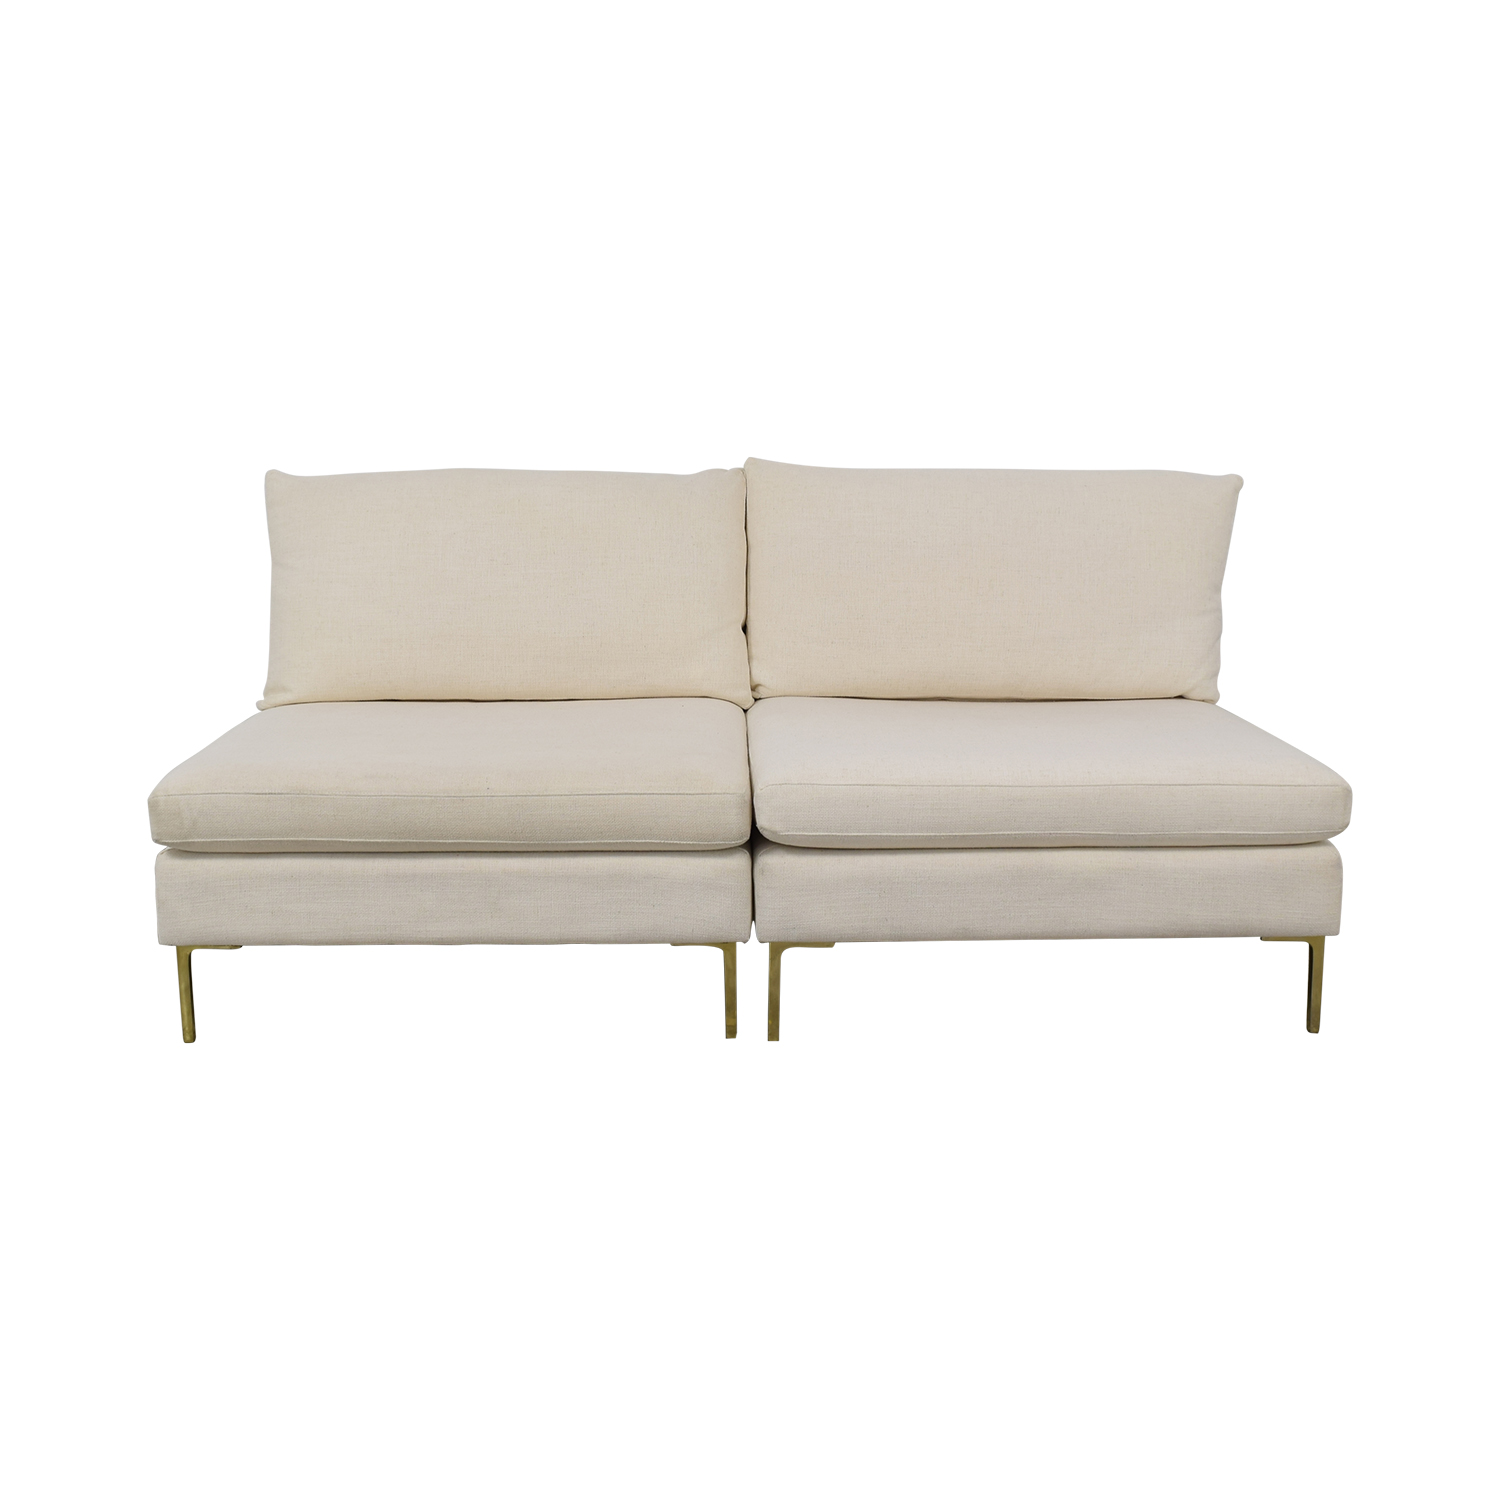 Anthropologie Anthropologie Armless Sofa nyc